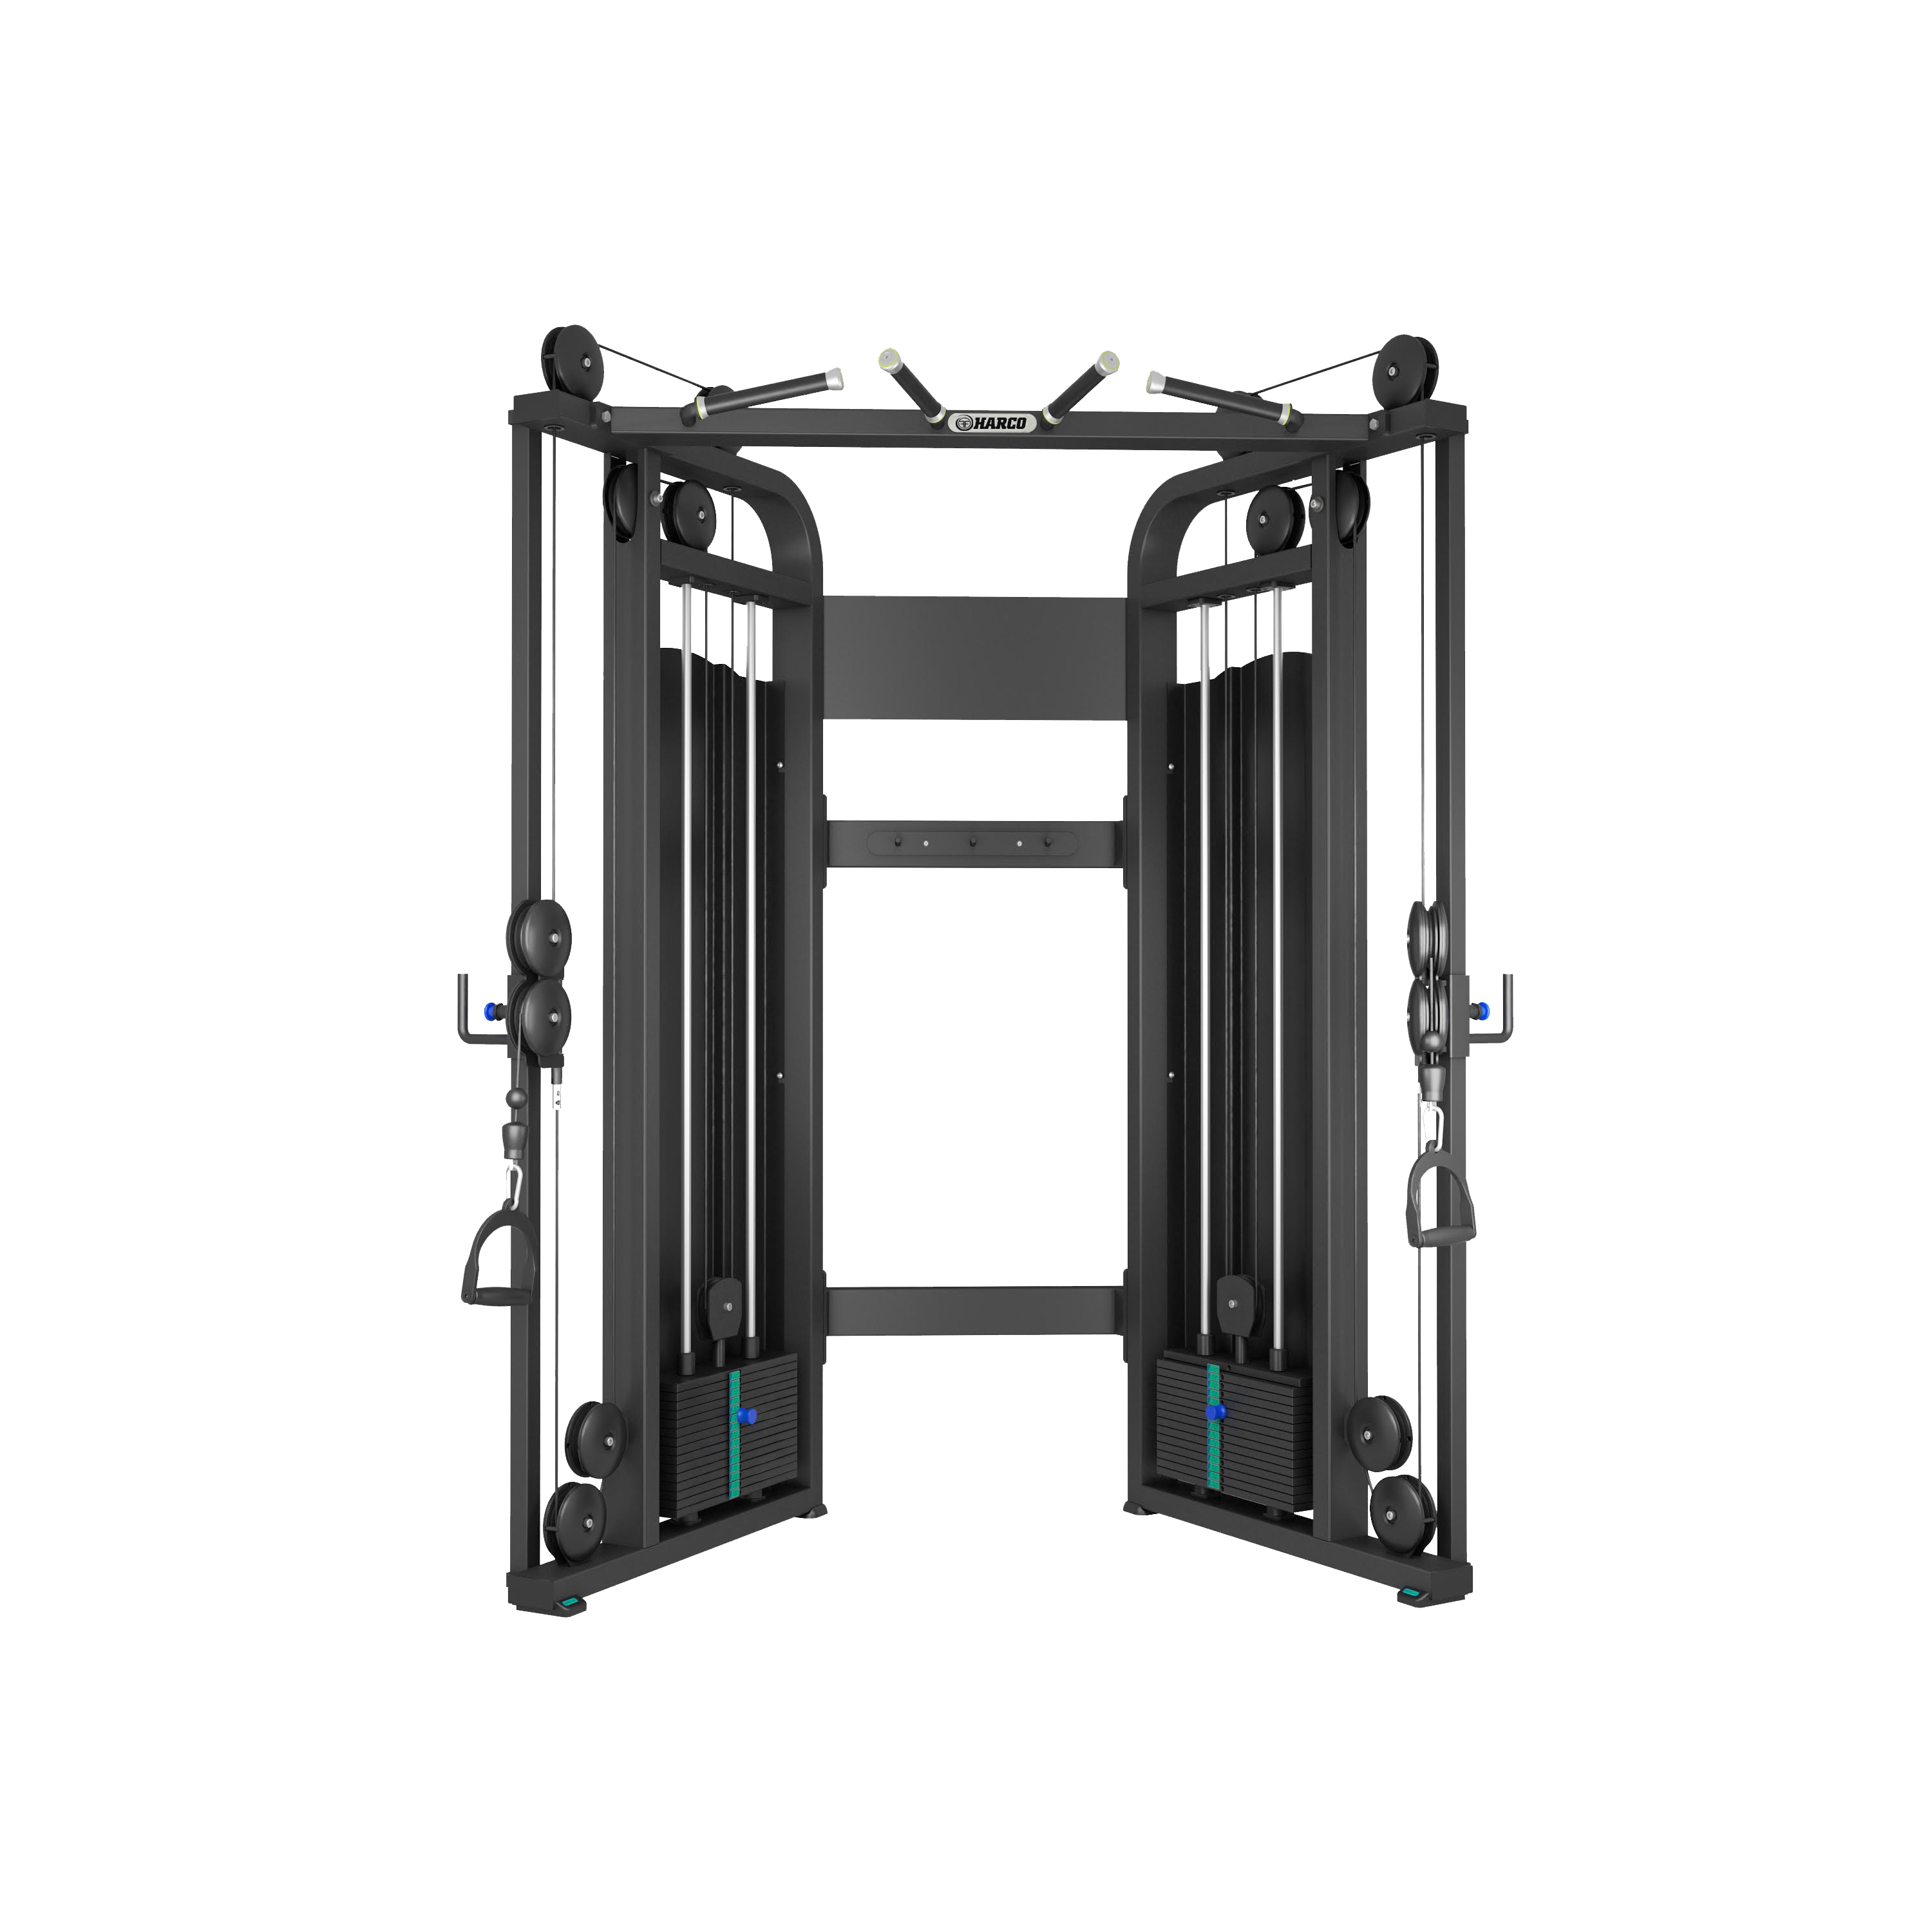 SRTB-17 FUNCTIONAL TRAINER – Harco India